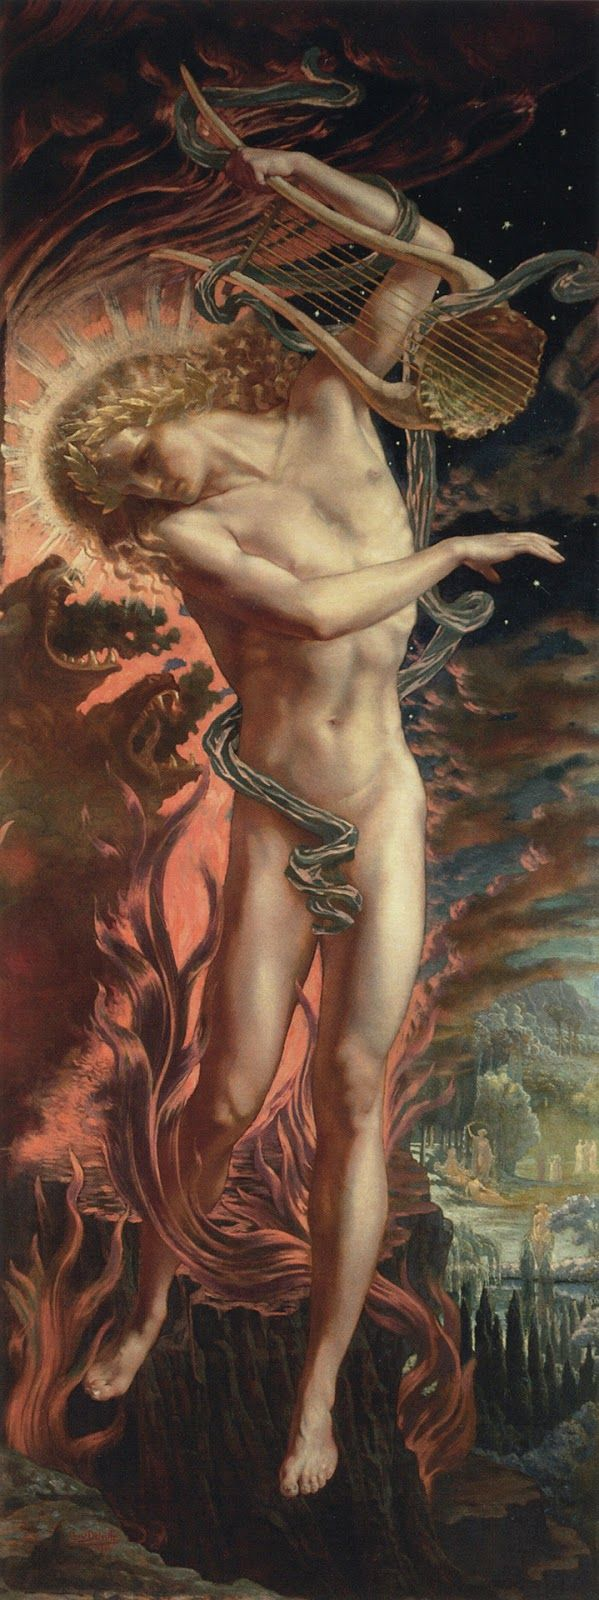 Orpheus in the Underworld , Jean Delville, 1896. Delville continued Péladan's Salons in Belgium with Péladan's blessing.